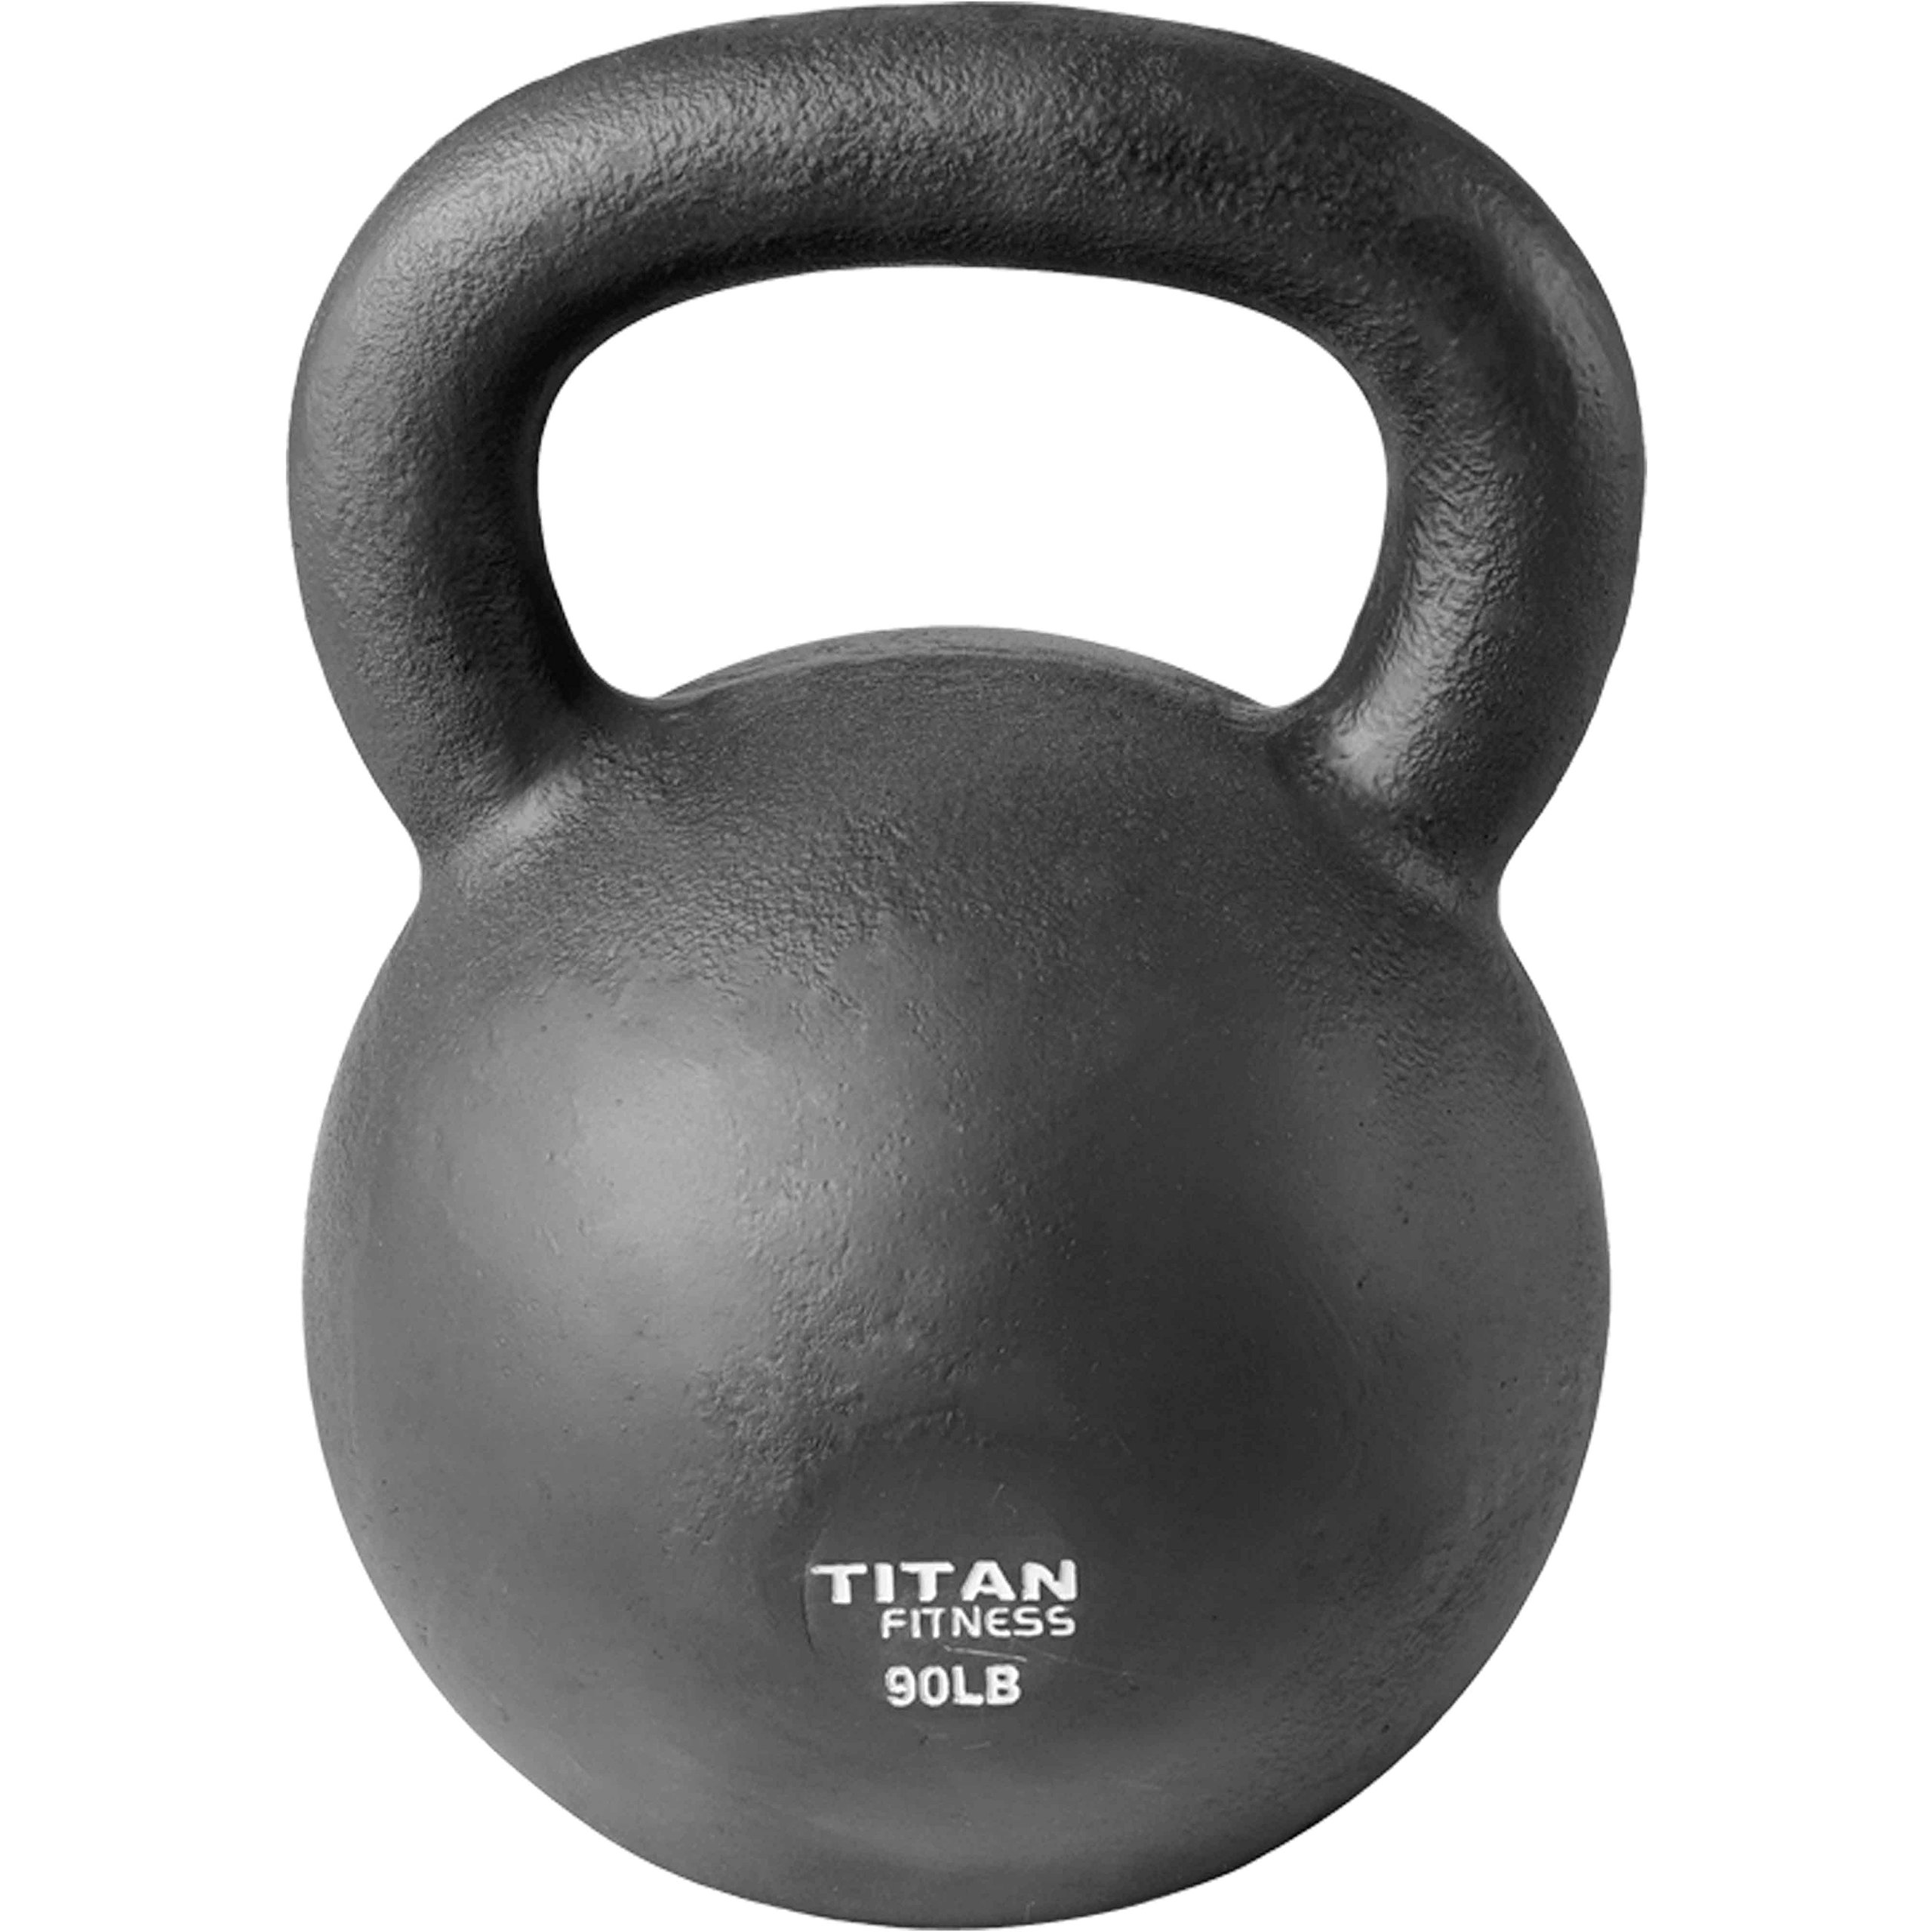 Cast Iron Kettlebell Weight 90 lb Natural Solid Titan Fitness Workout Swing by Titan Fitness (Image #3)